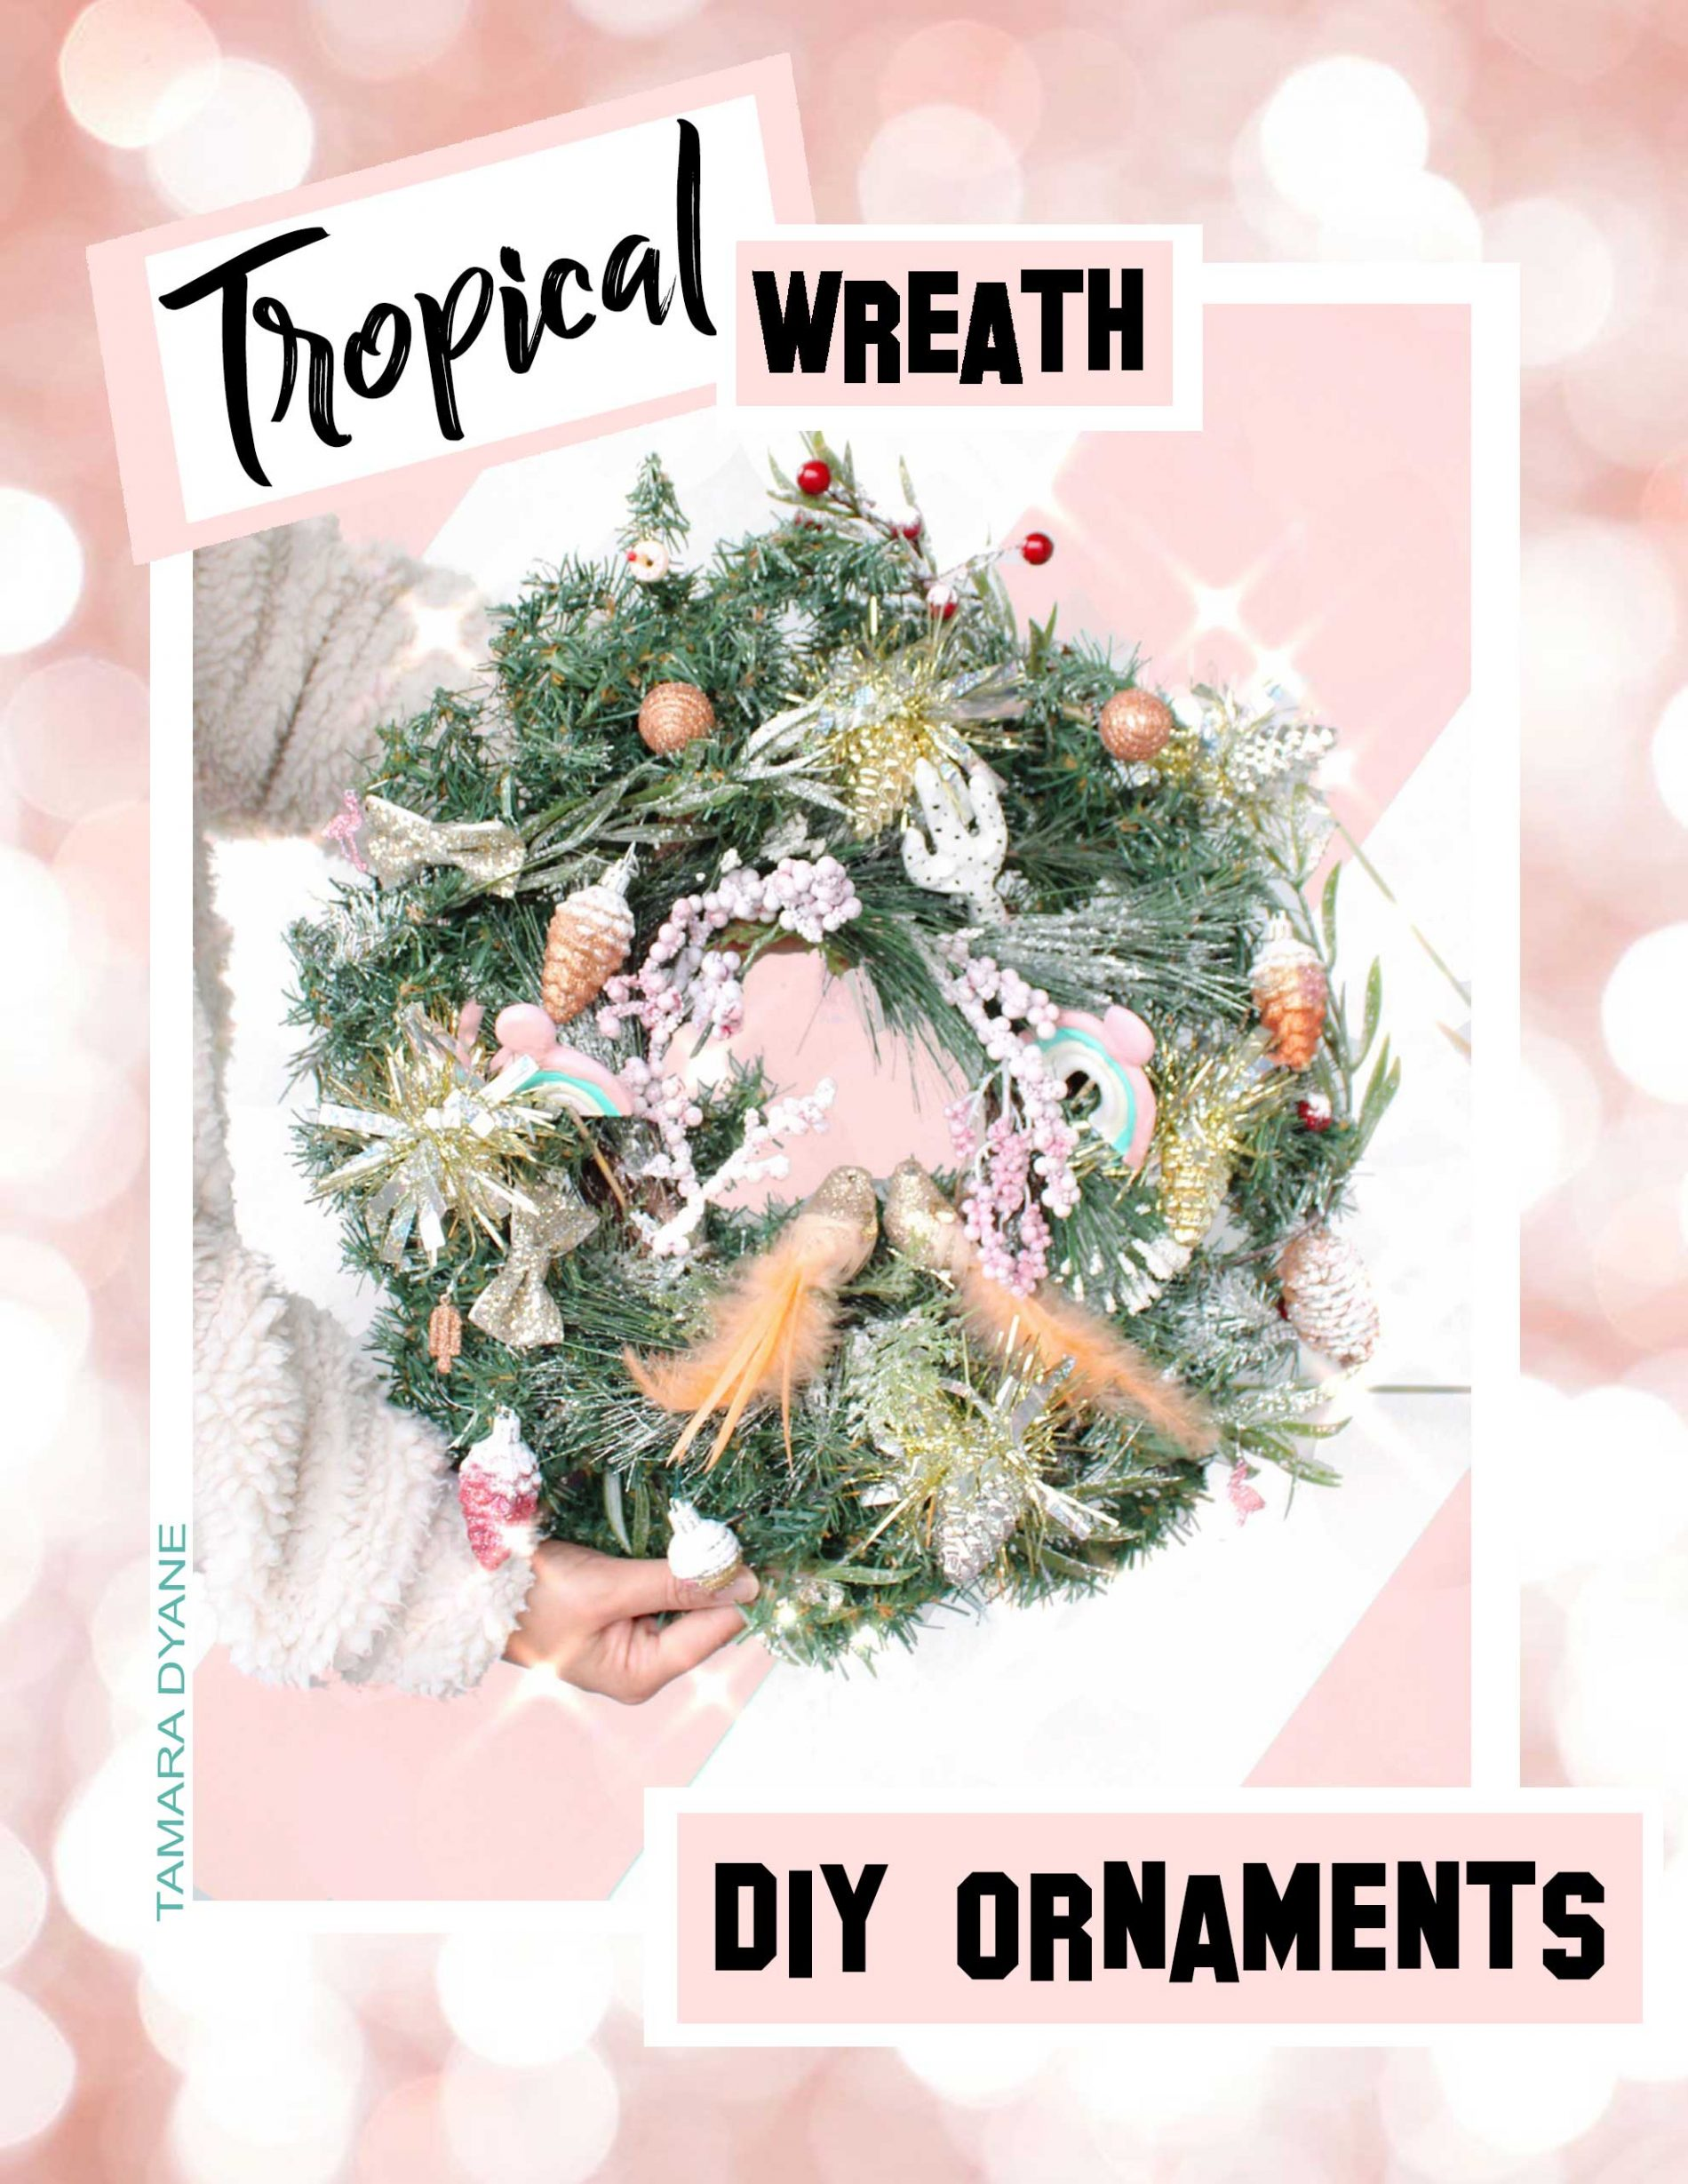 TROPICAL HOLIDAY WREATH // DIY Pinterest inspired ornaments